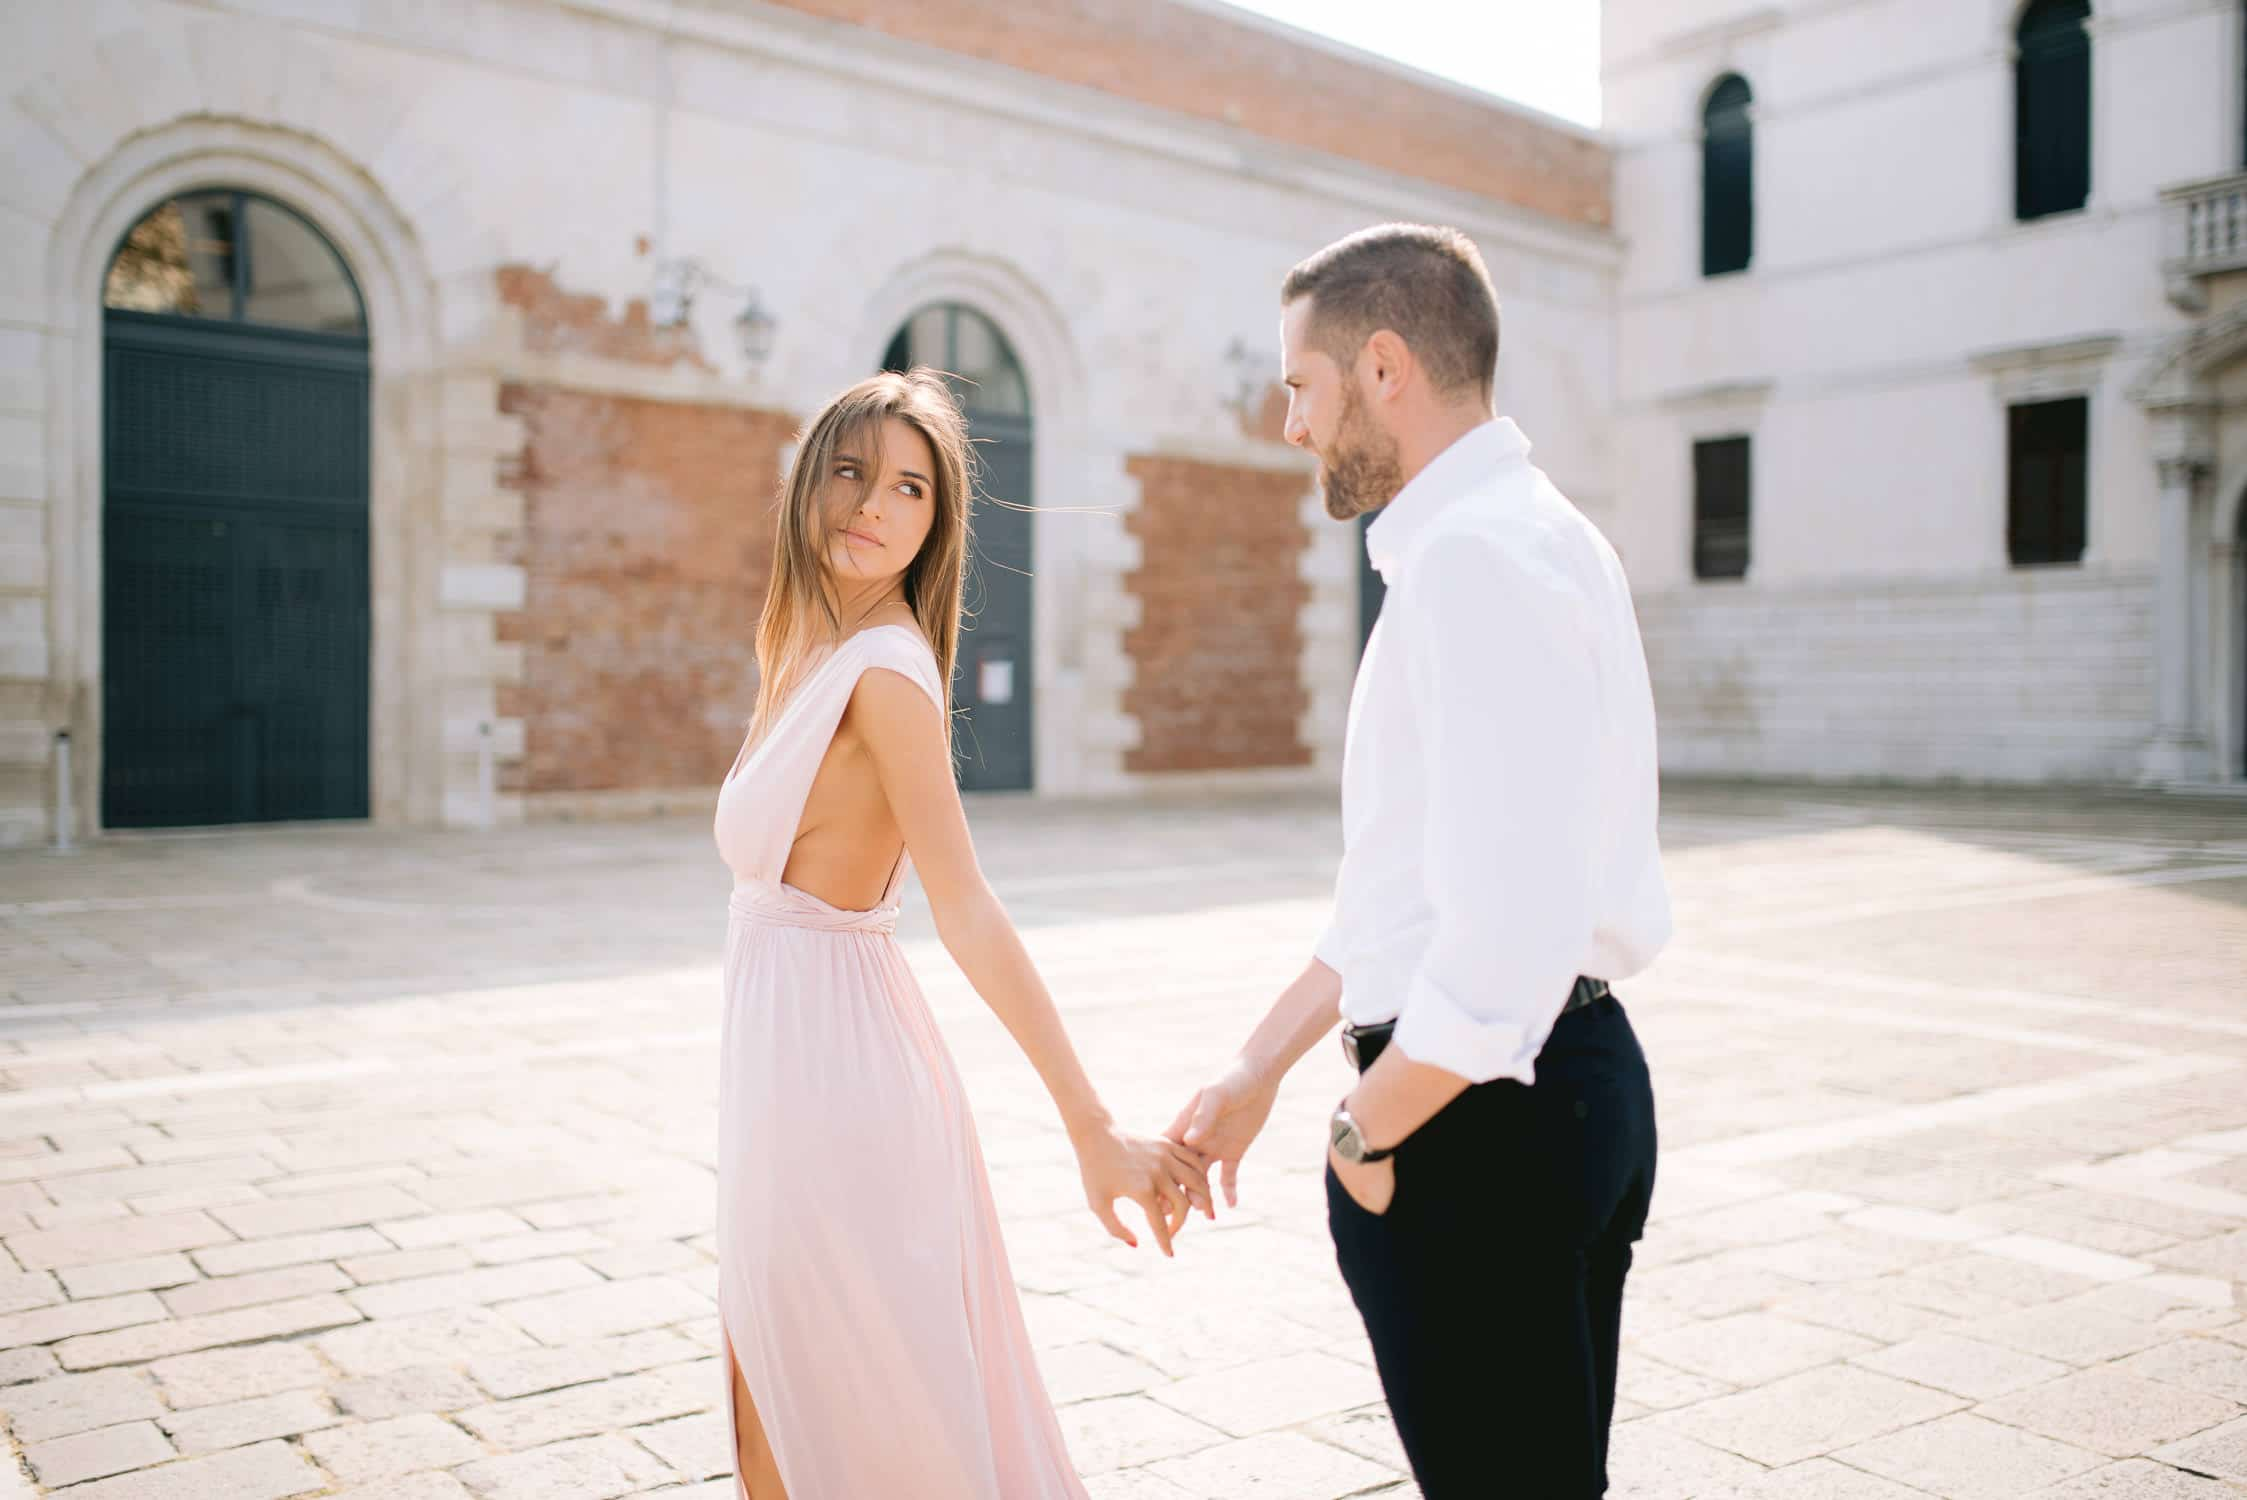 Refined and timeless wedding photography in Italy